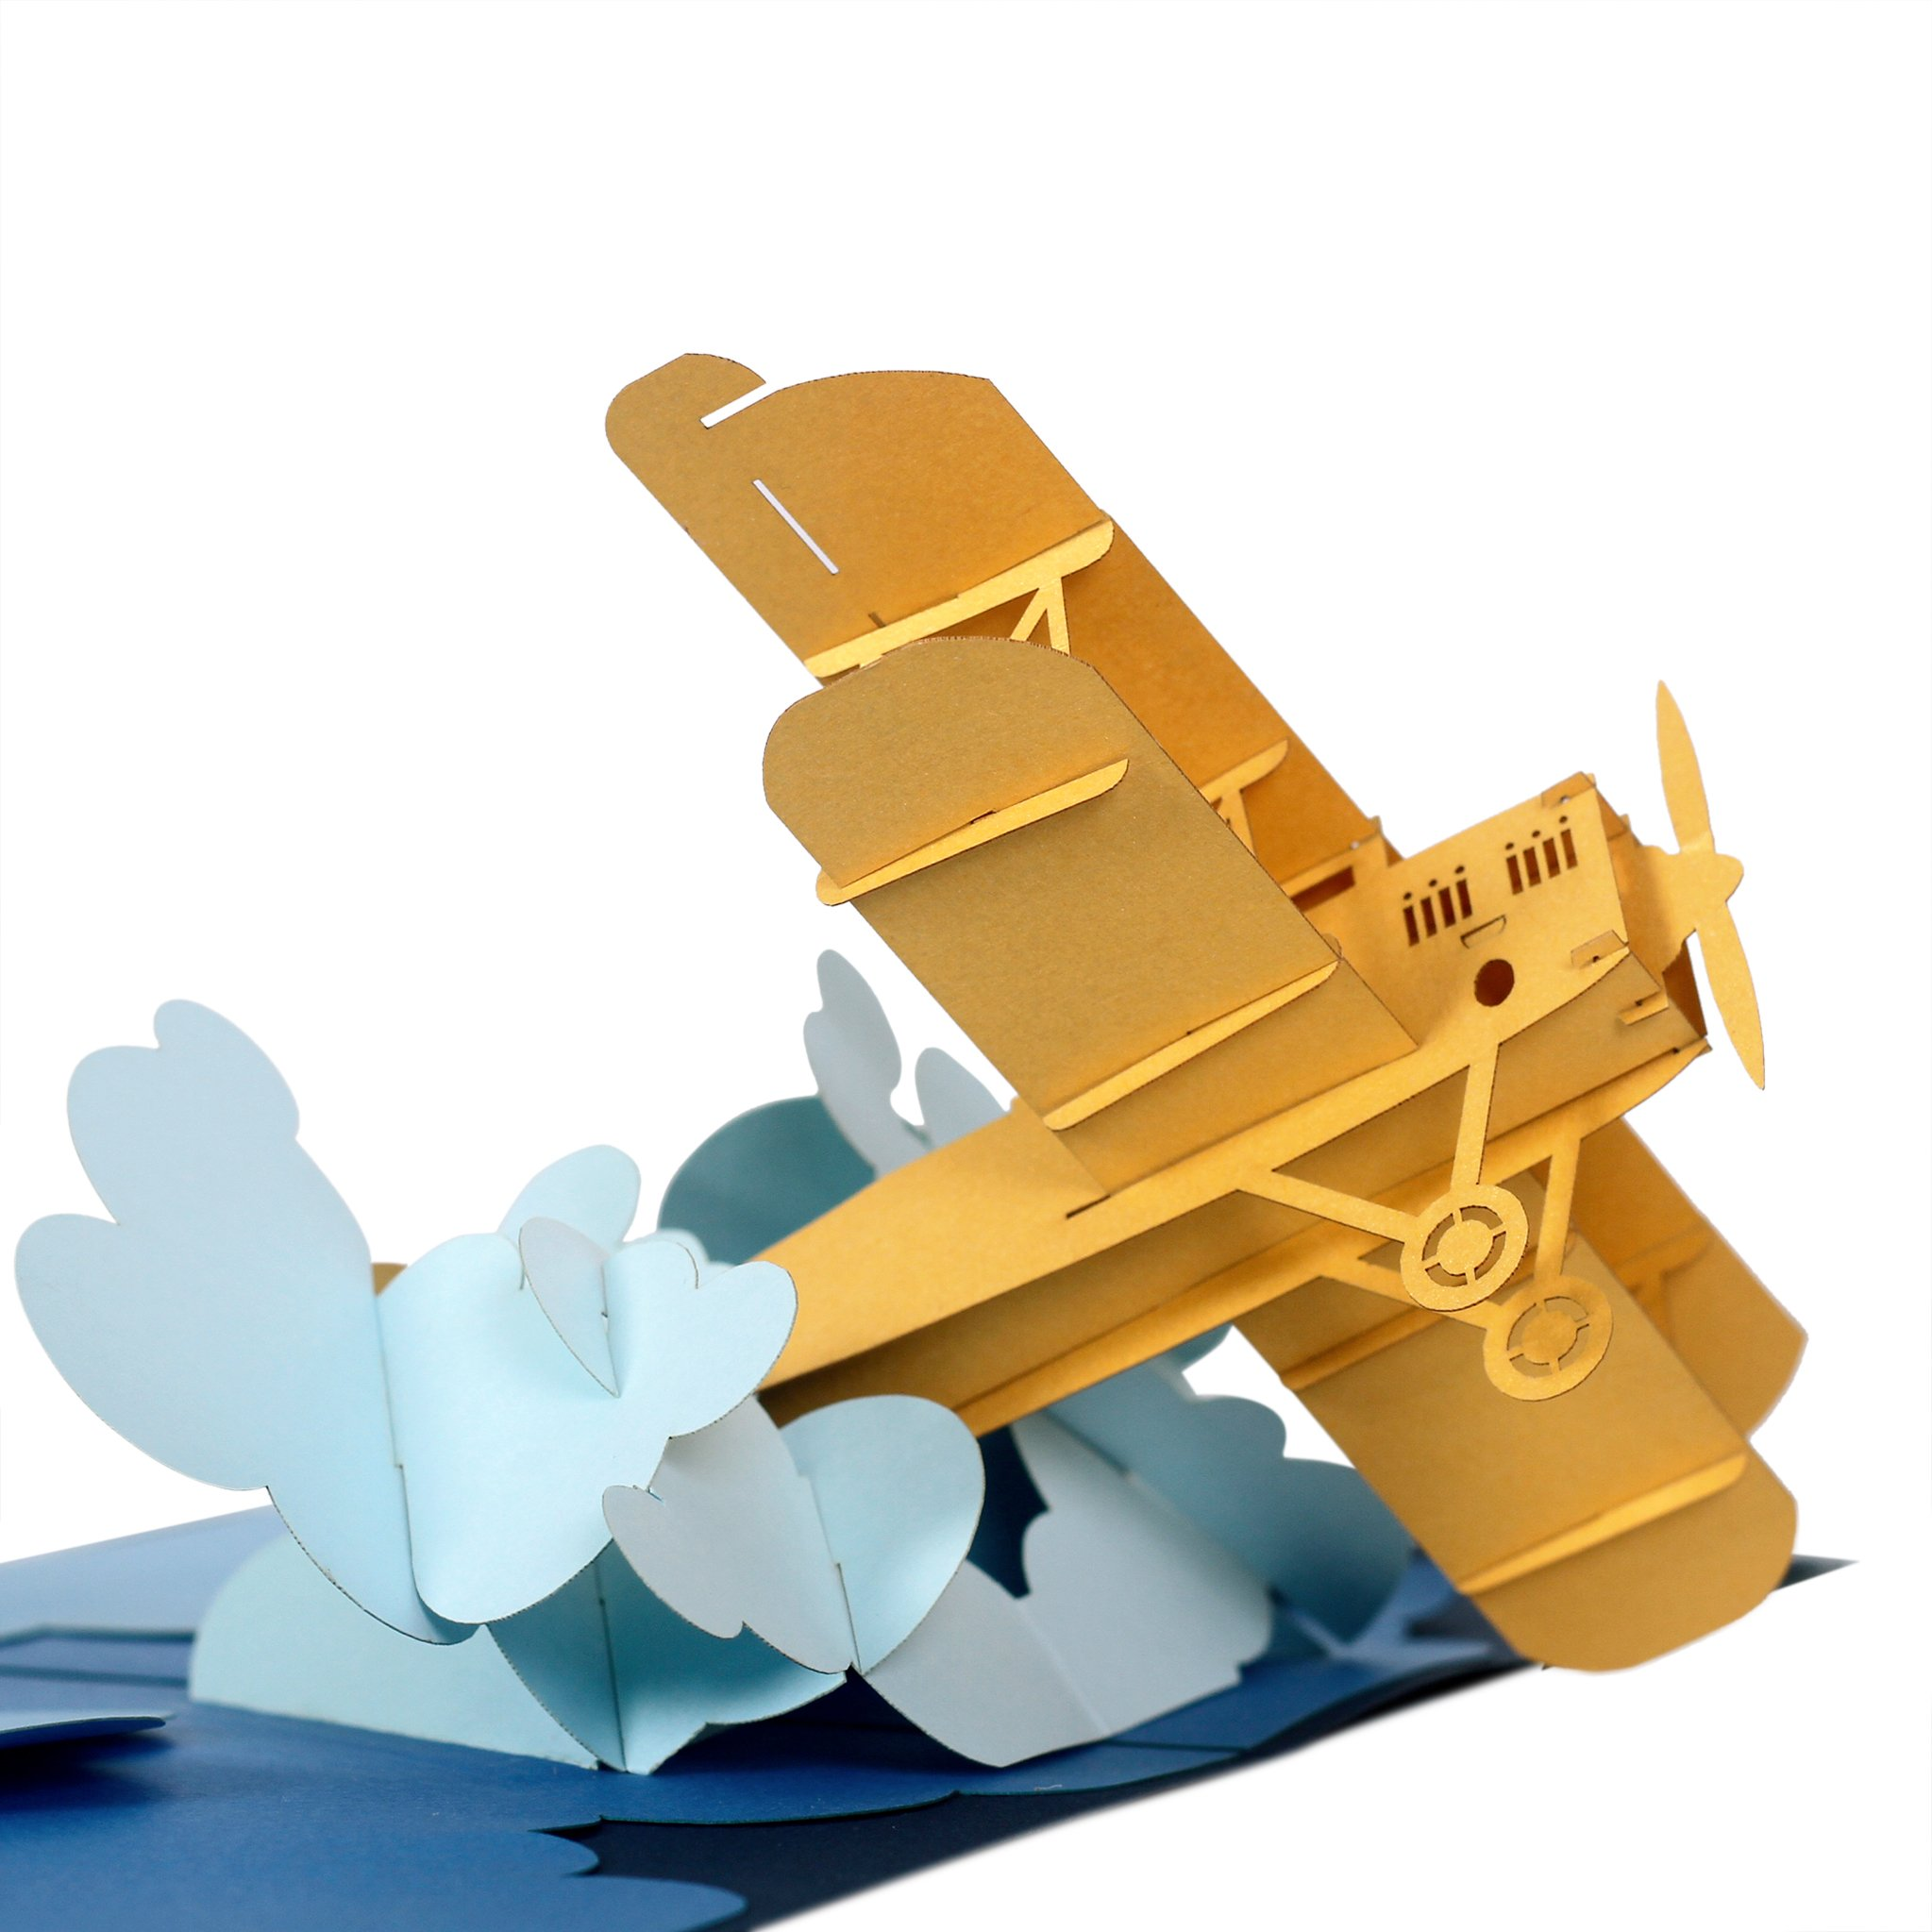 CUTEPOPUP 3d Pop Up Greeting Card AIRPLANE Flying Plane Best Gift Idea for Friends and Family, Thank You Cards, Valentine, Birthday.